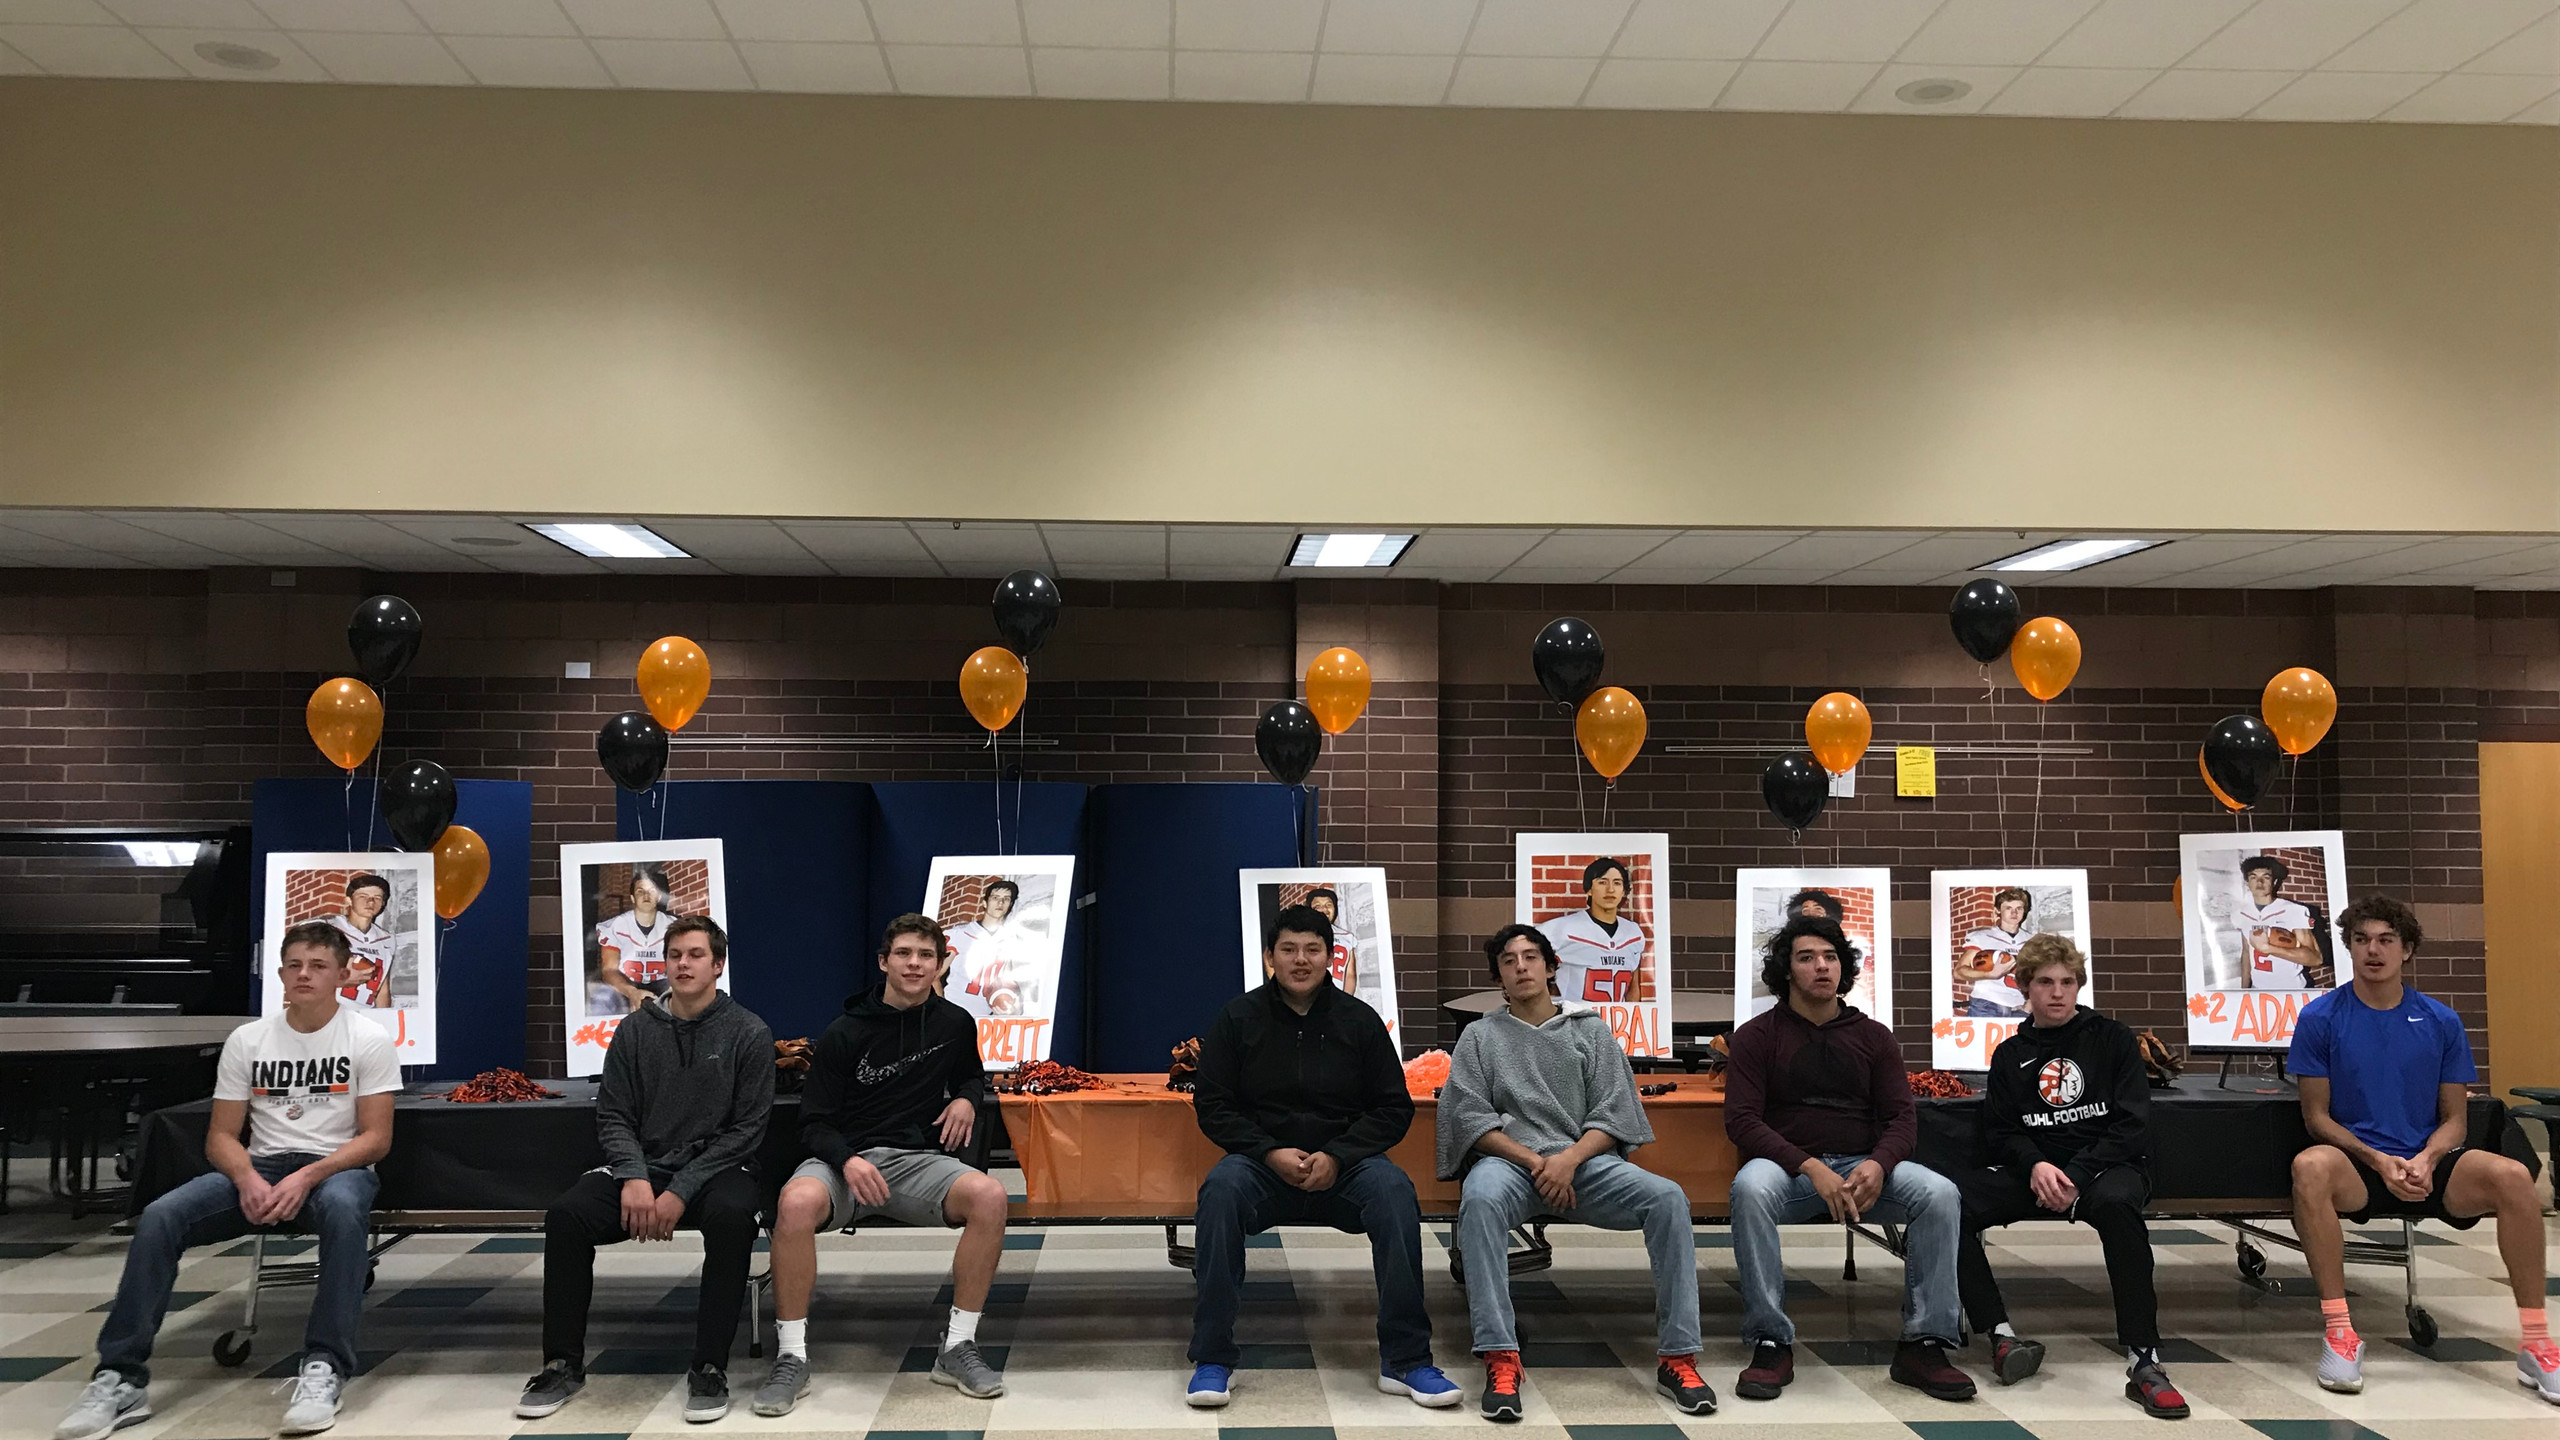 The 8 Senior Boys take a picture together in front of their portraits and balloons.